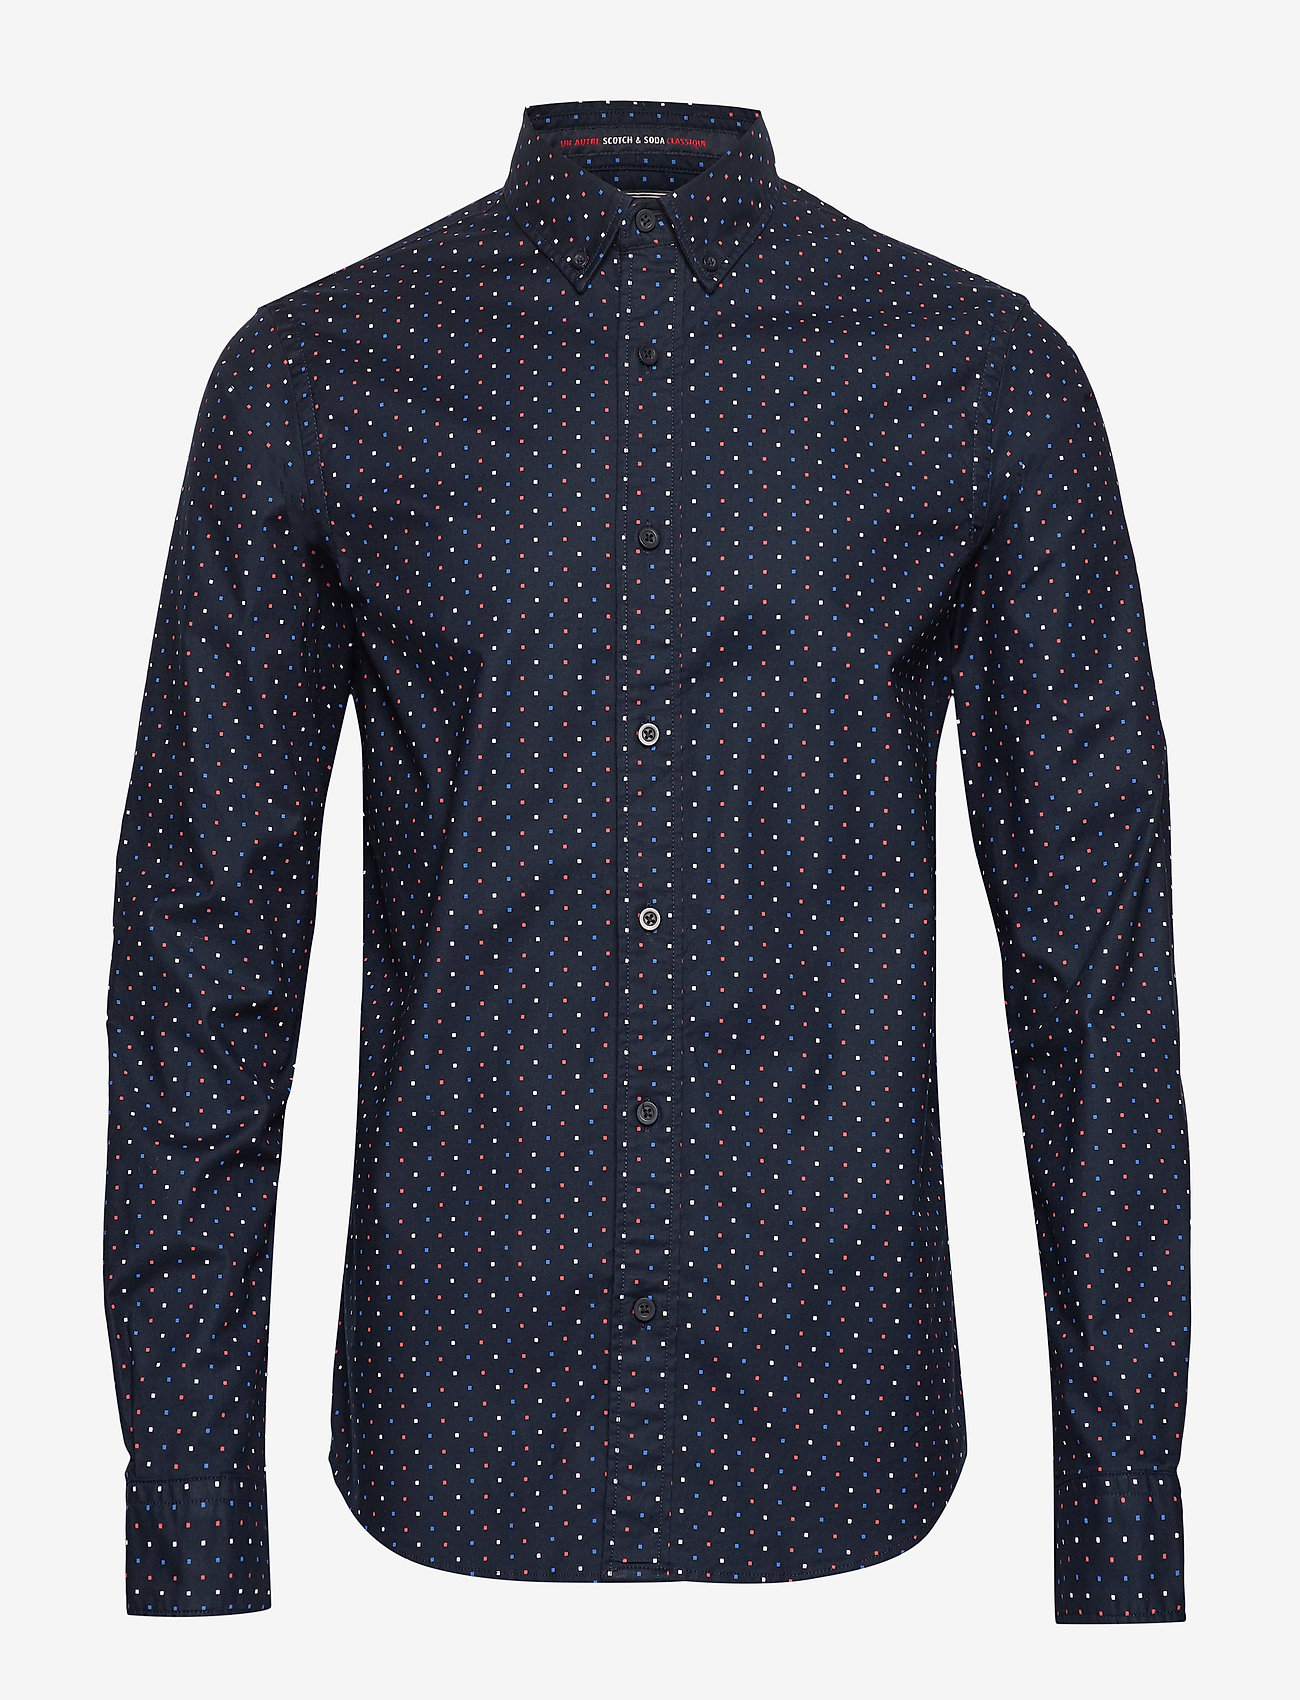 Scotch & Soda - REGULAR FIT- Classic oxford shirt with all-over print - chemises d'affaires - combo e - 0